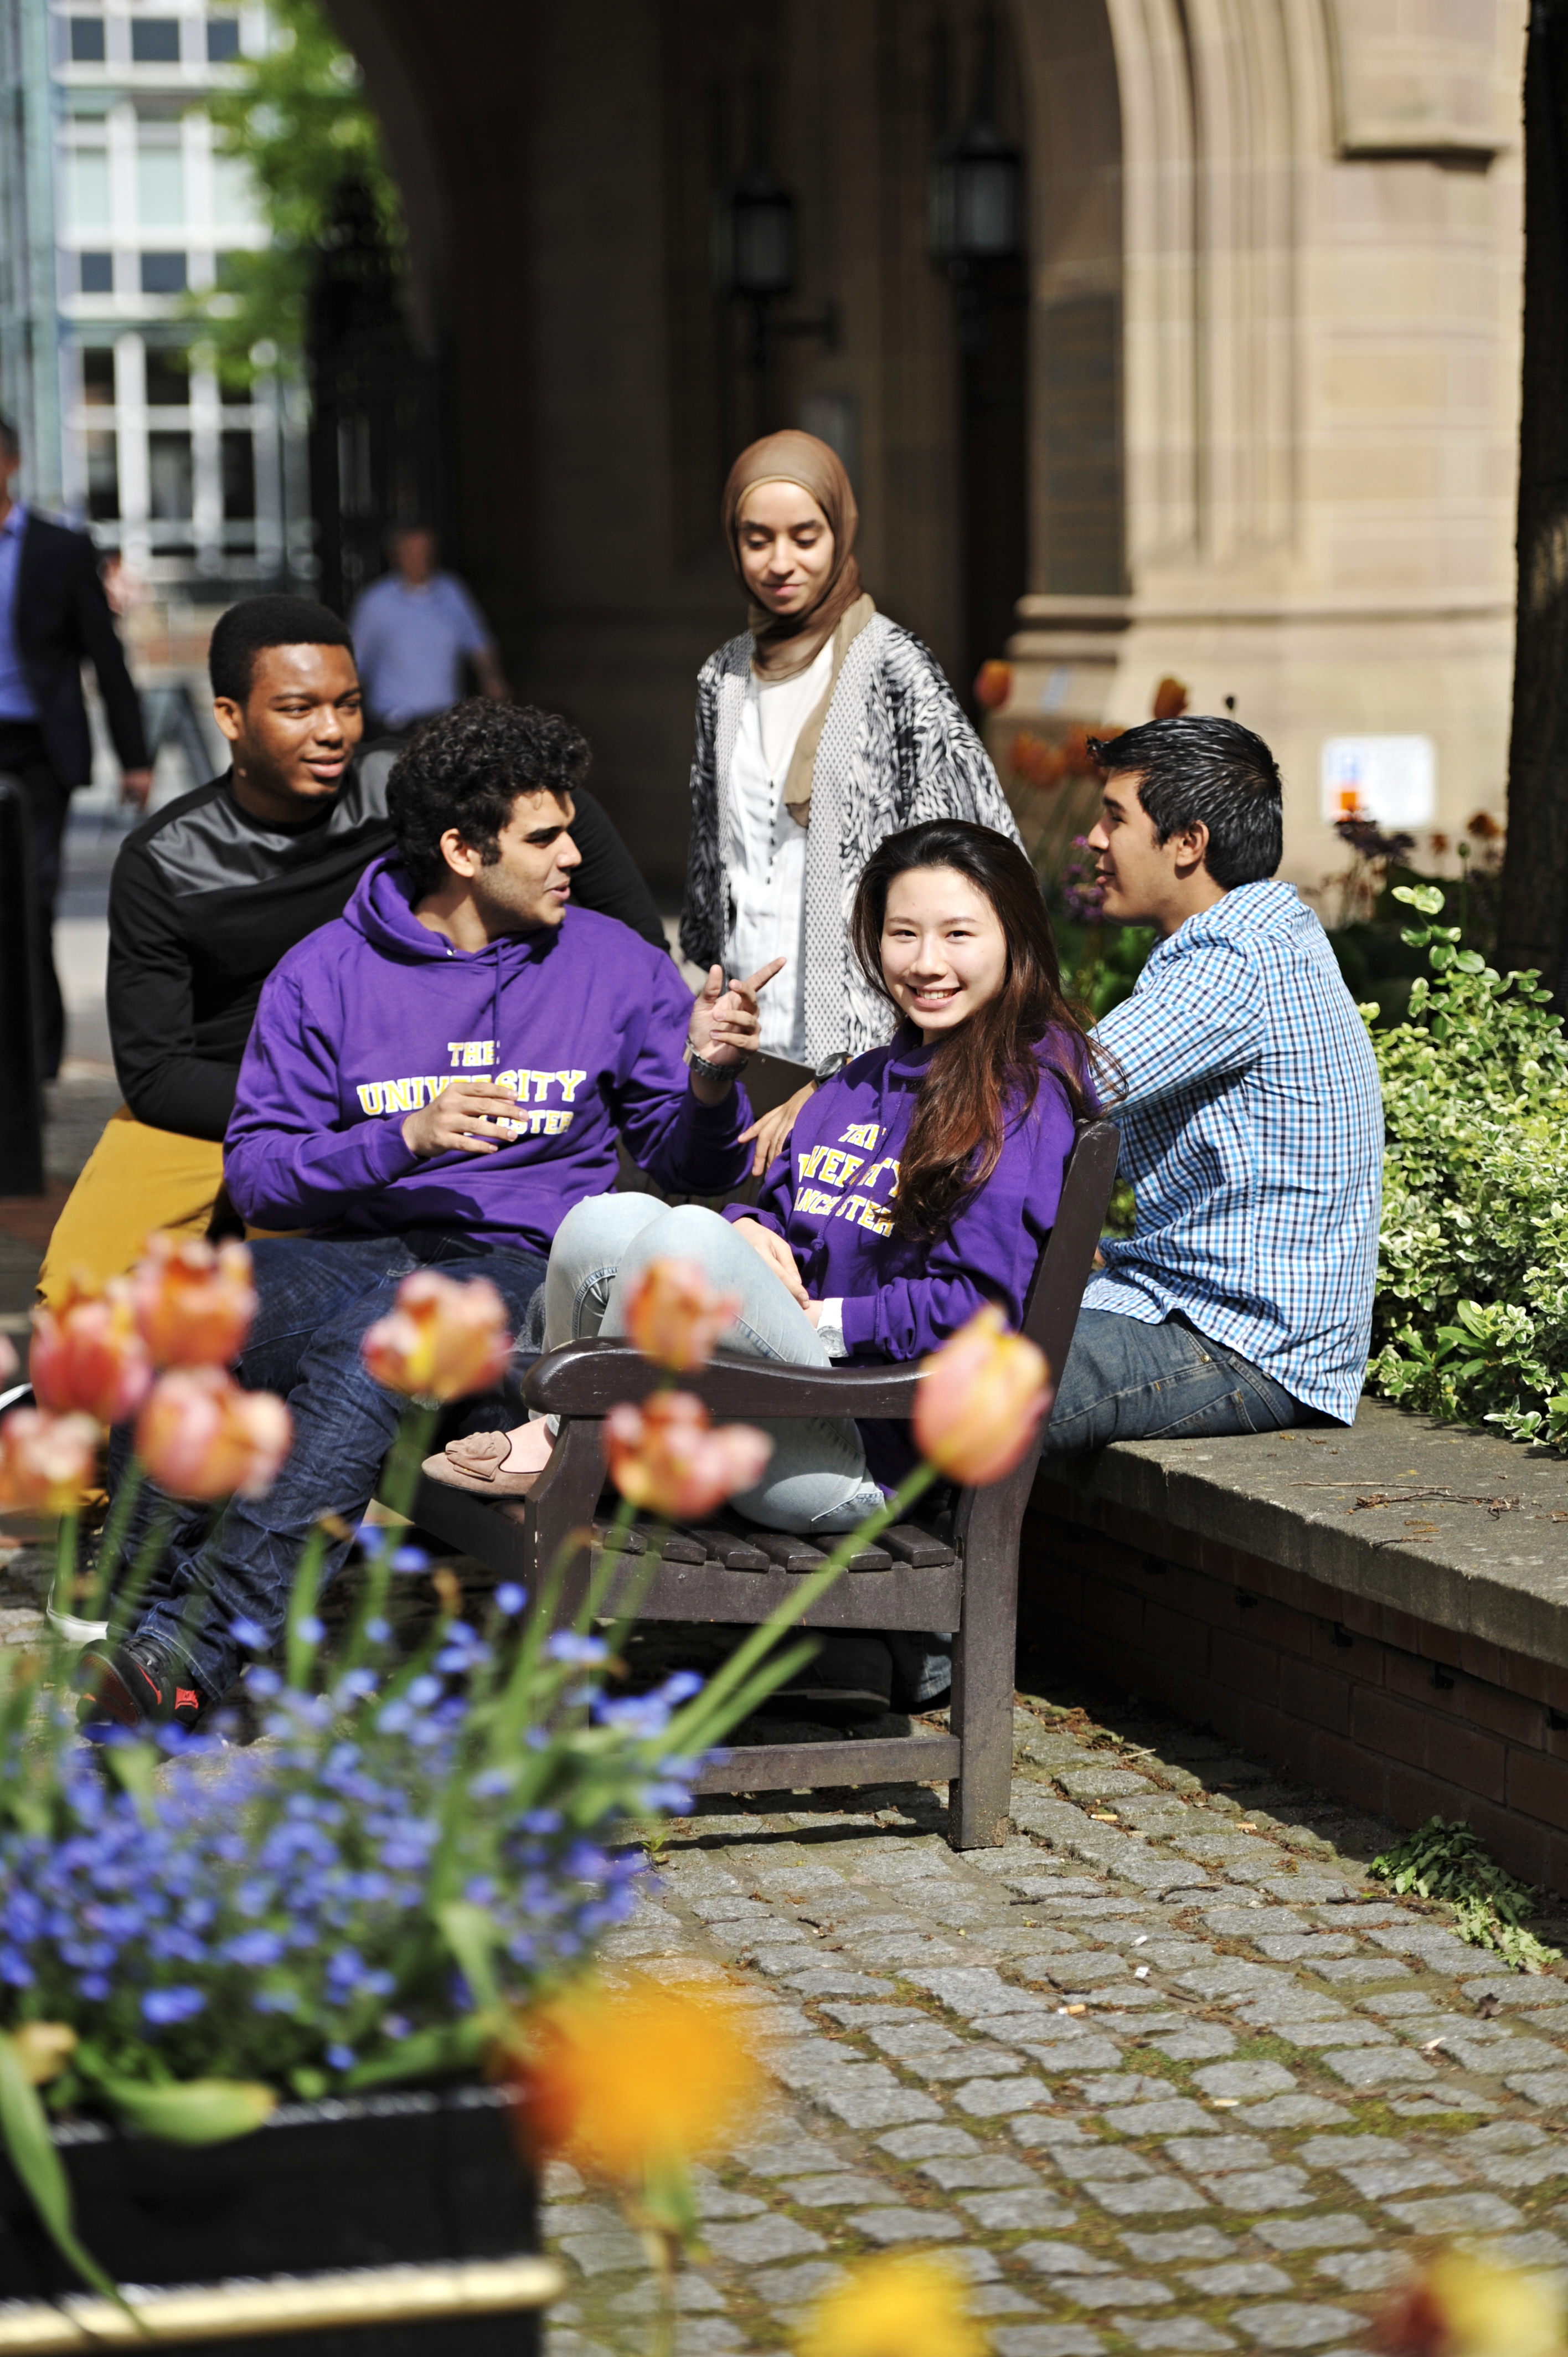 Student socialising outside on campus at The University of Manchester